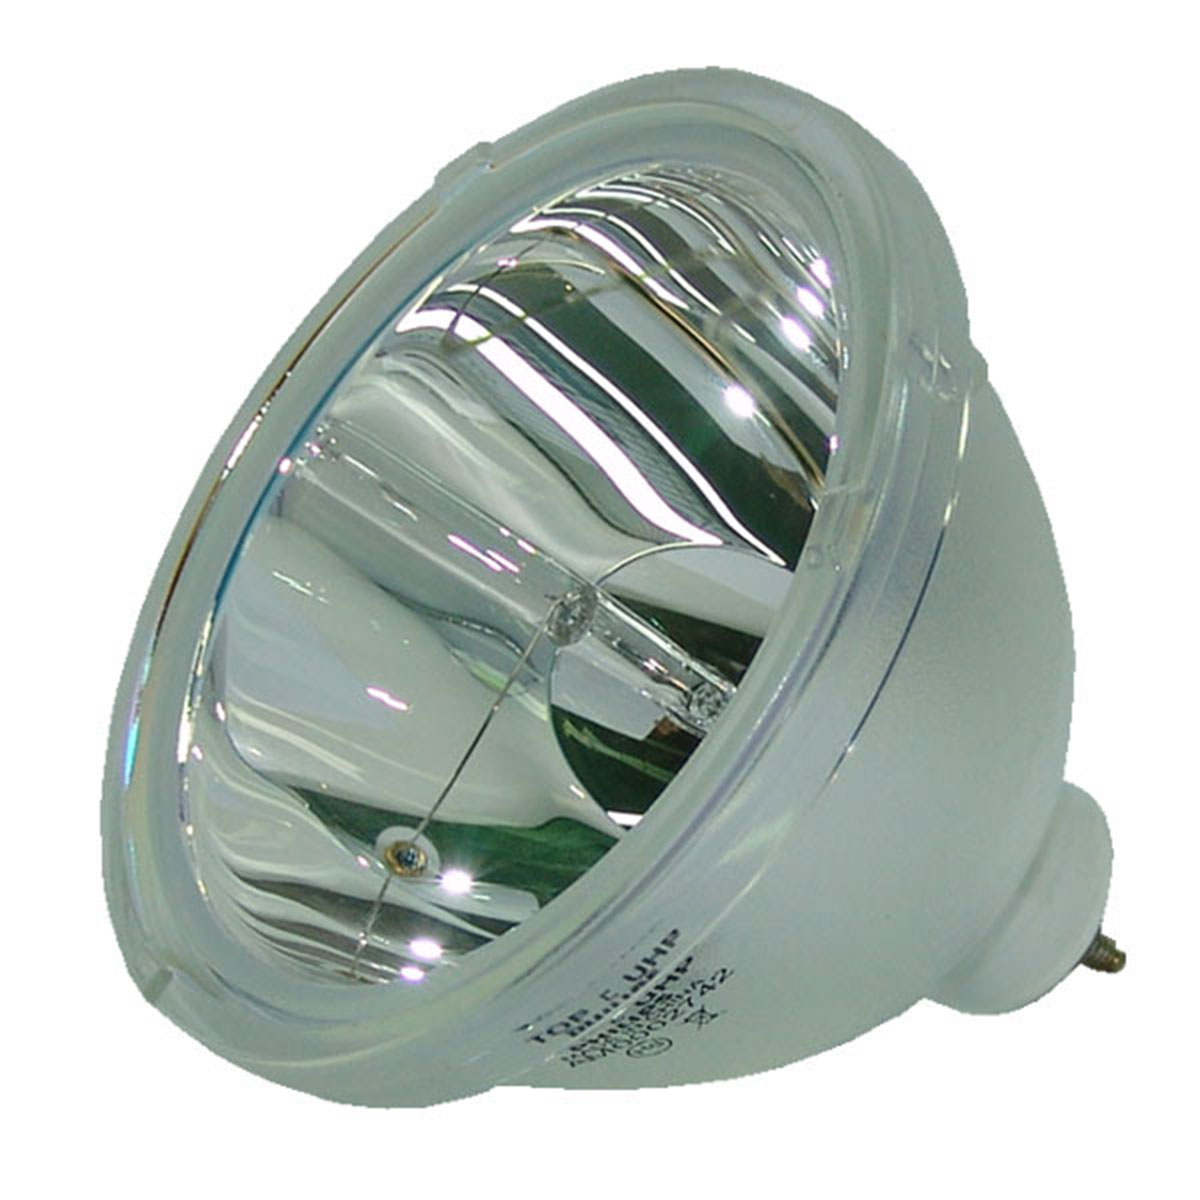 Mitsubishi Projection Tv Bulb Philips Bare Lamp For Mitsubishi Wd 62627 Wd62627 Projection Tv Bulb Dlp